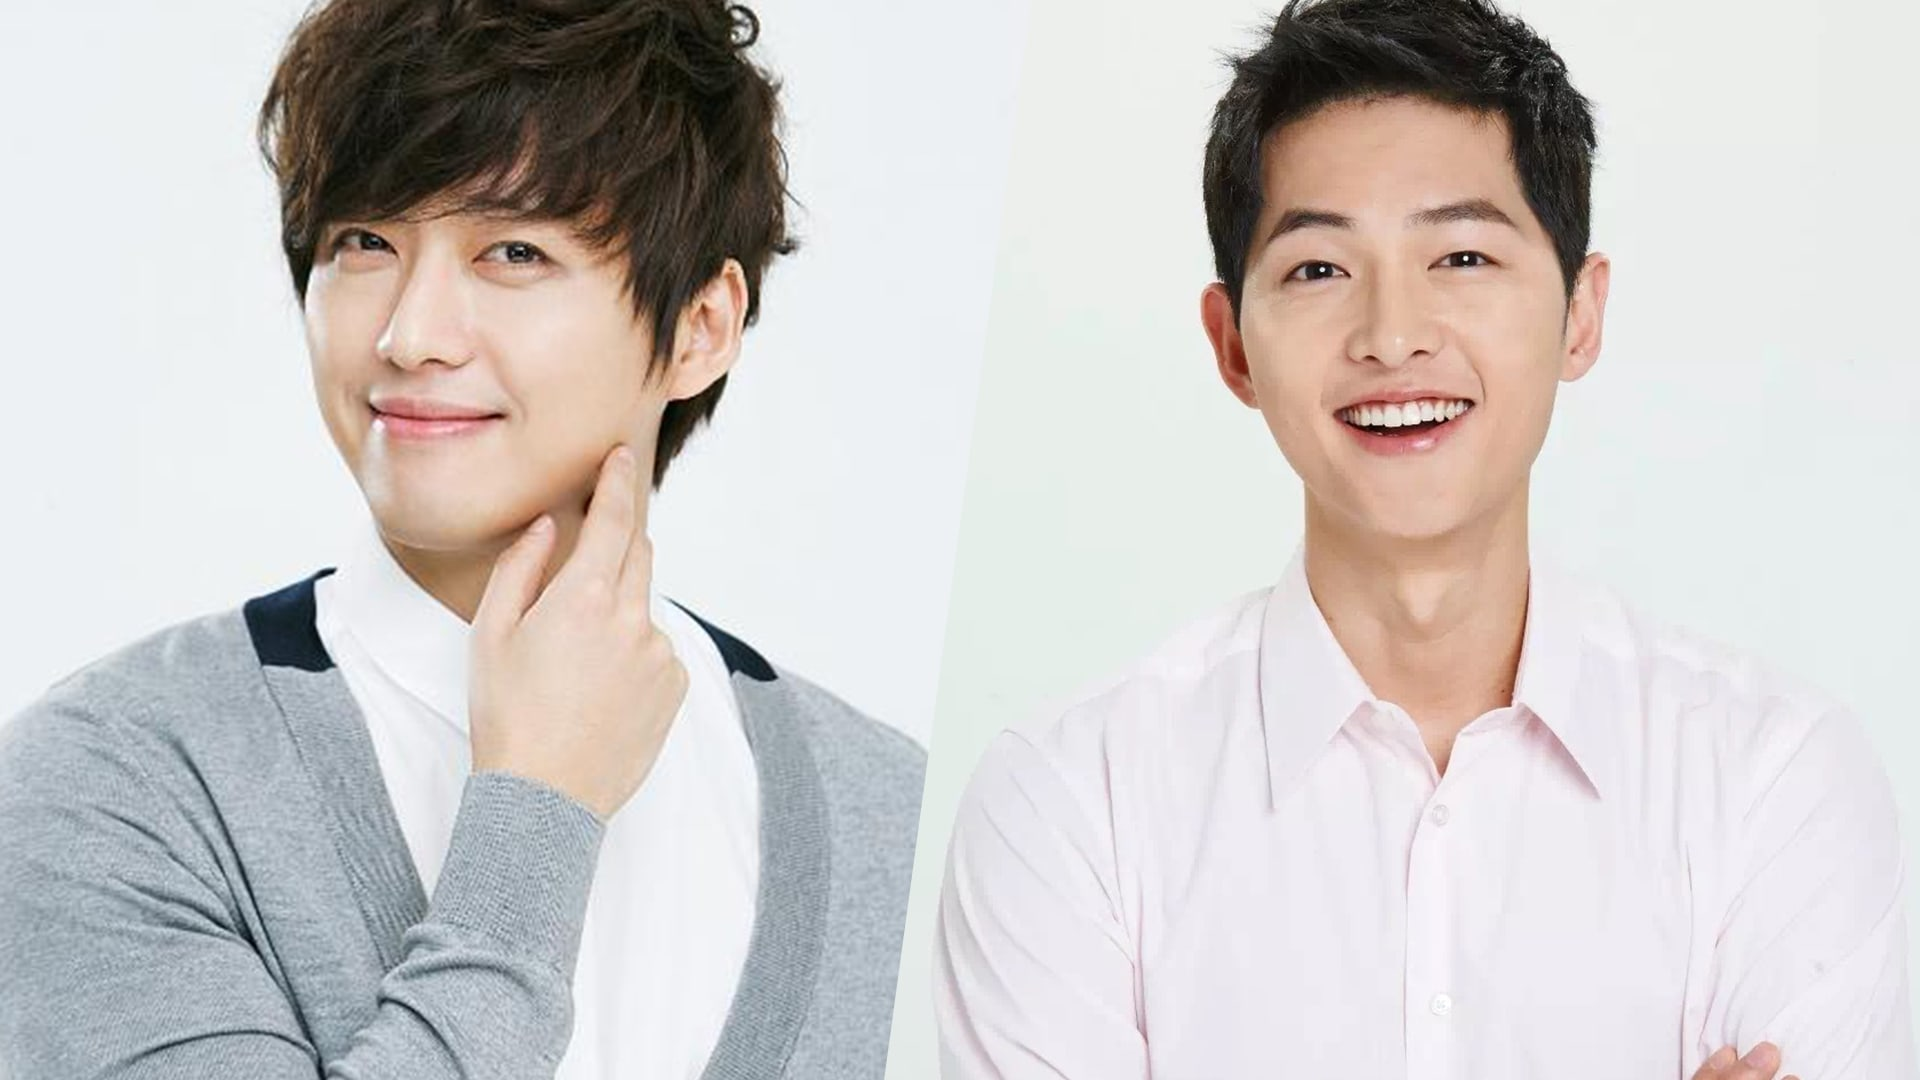 """Man To Man"" Gives Viewers A First Look At Song Joong Ki and Namgoong Min's Cameo Appearances"